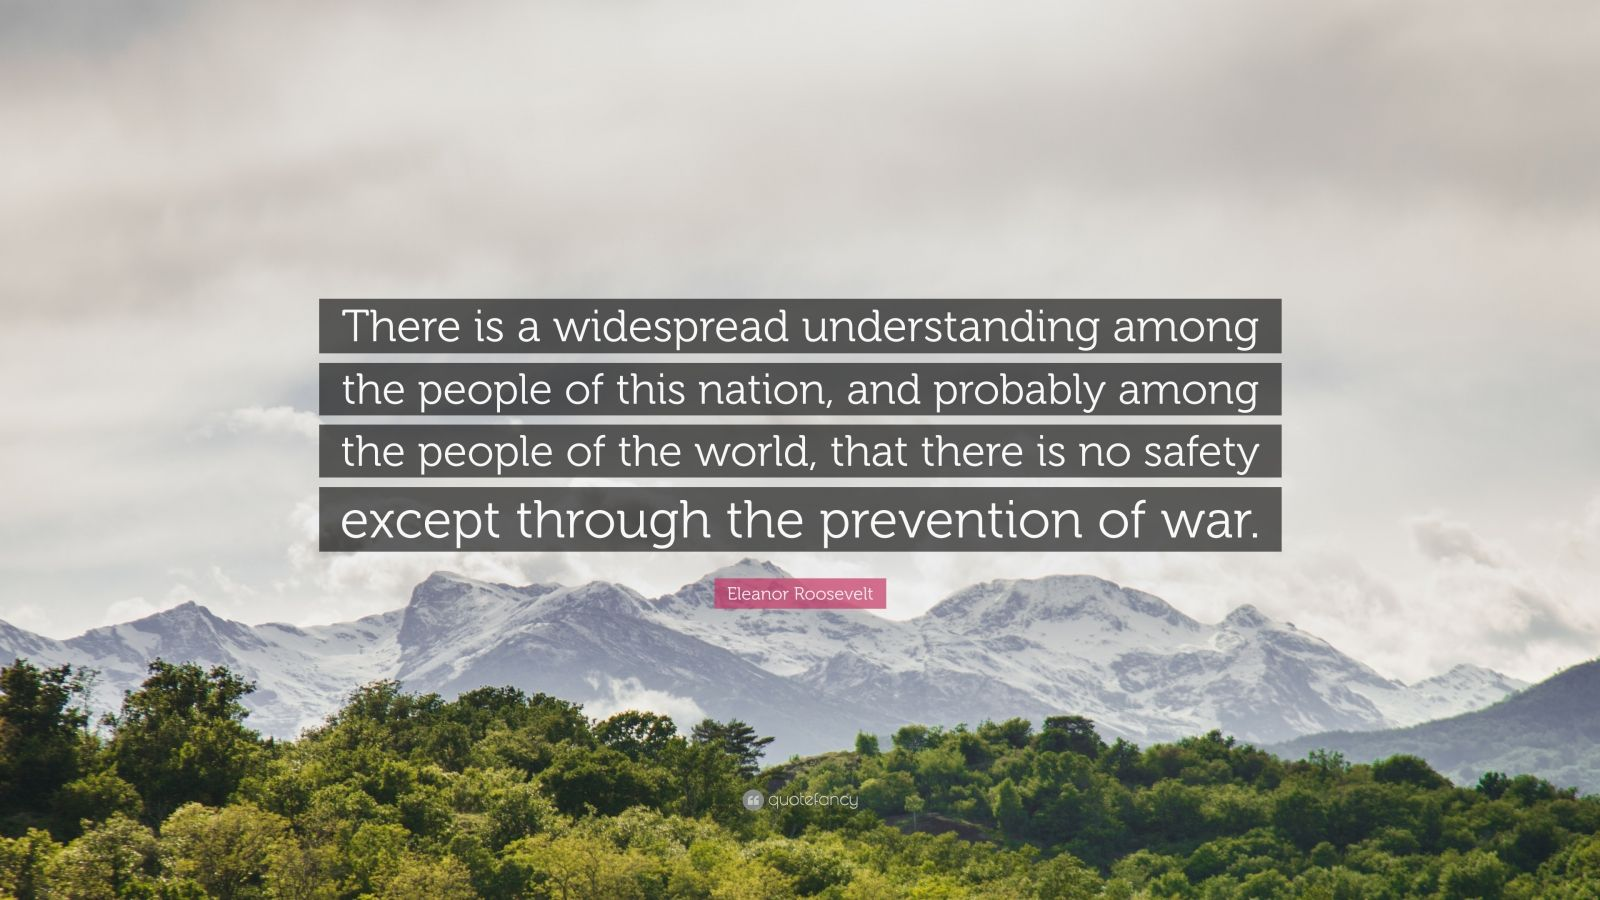 """Eleanor Roosevelt Quote: """"There is a widespread understanding among the people of this nation, and probably among the people of the world, that there is no safety except through the prevention of war."""""""